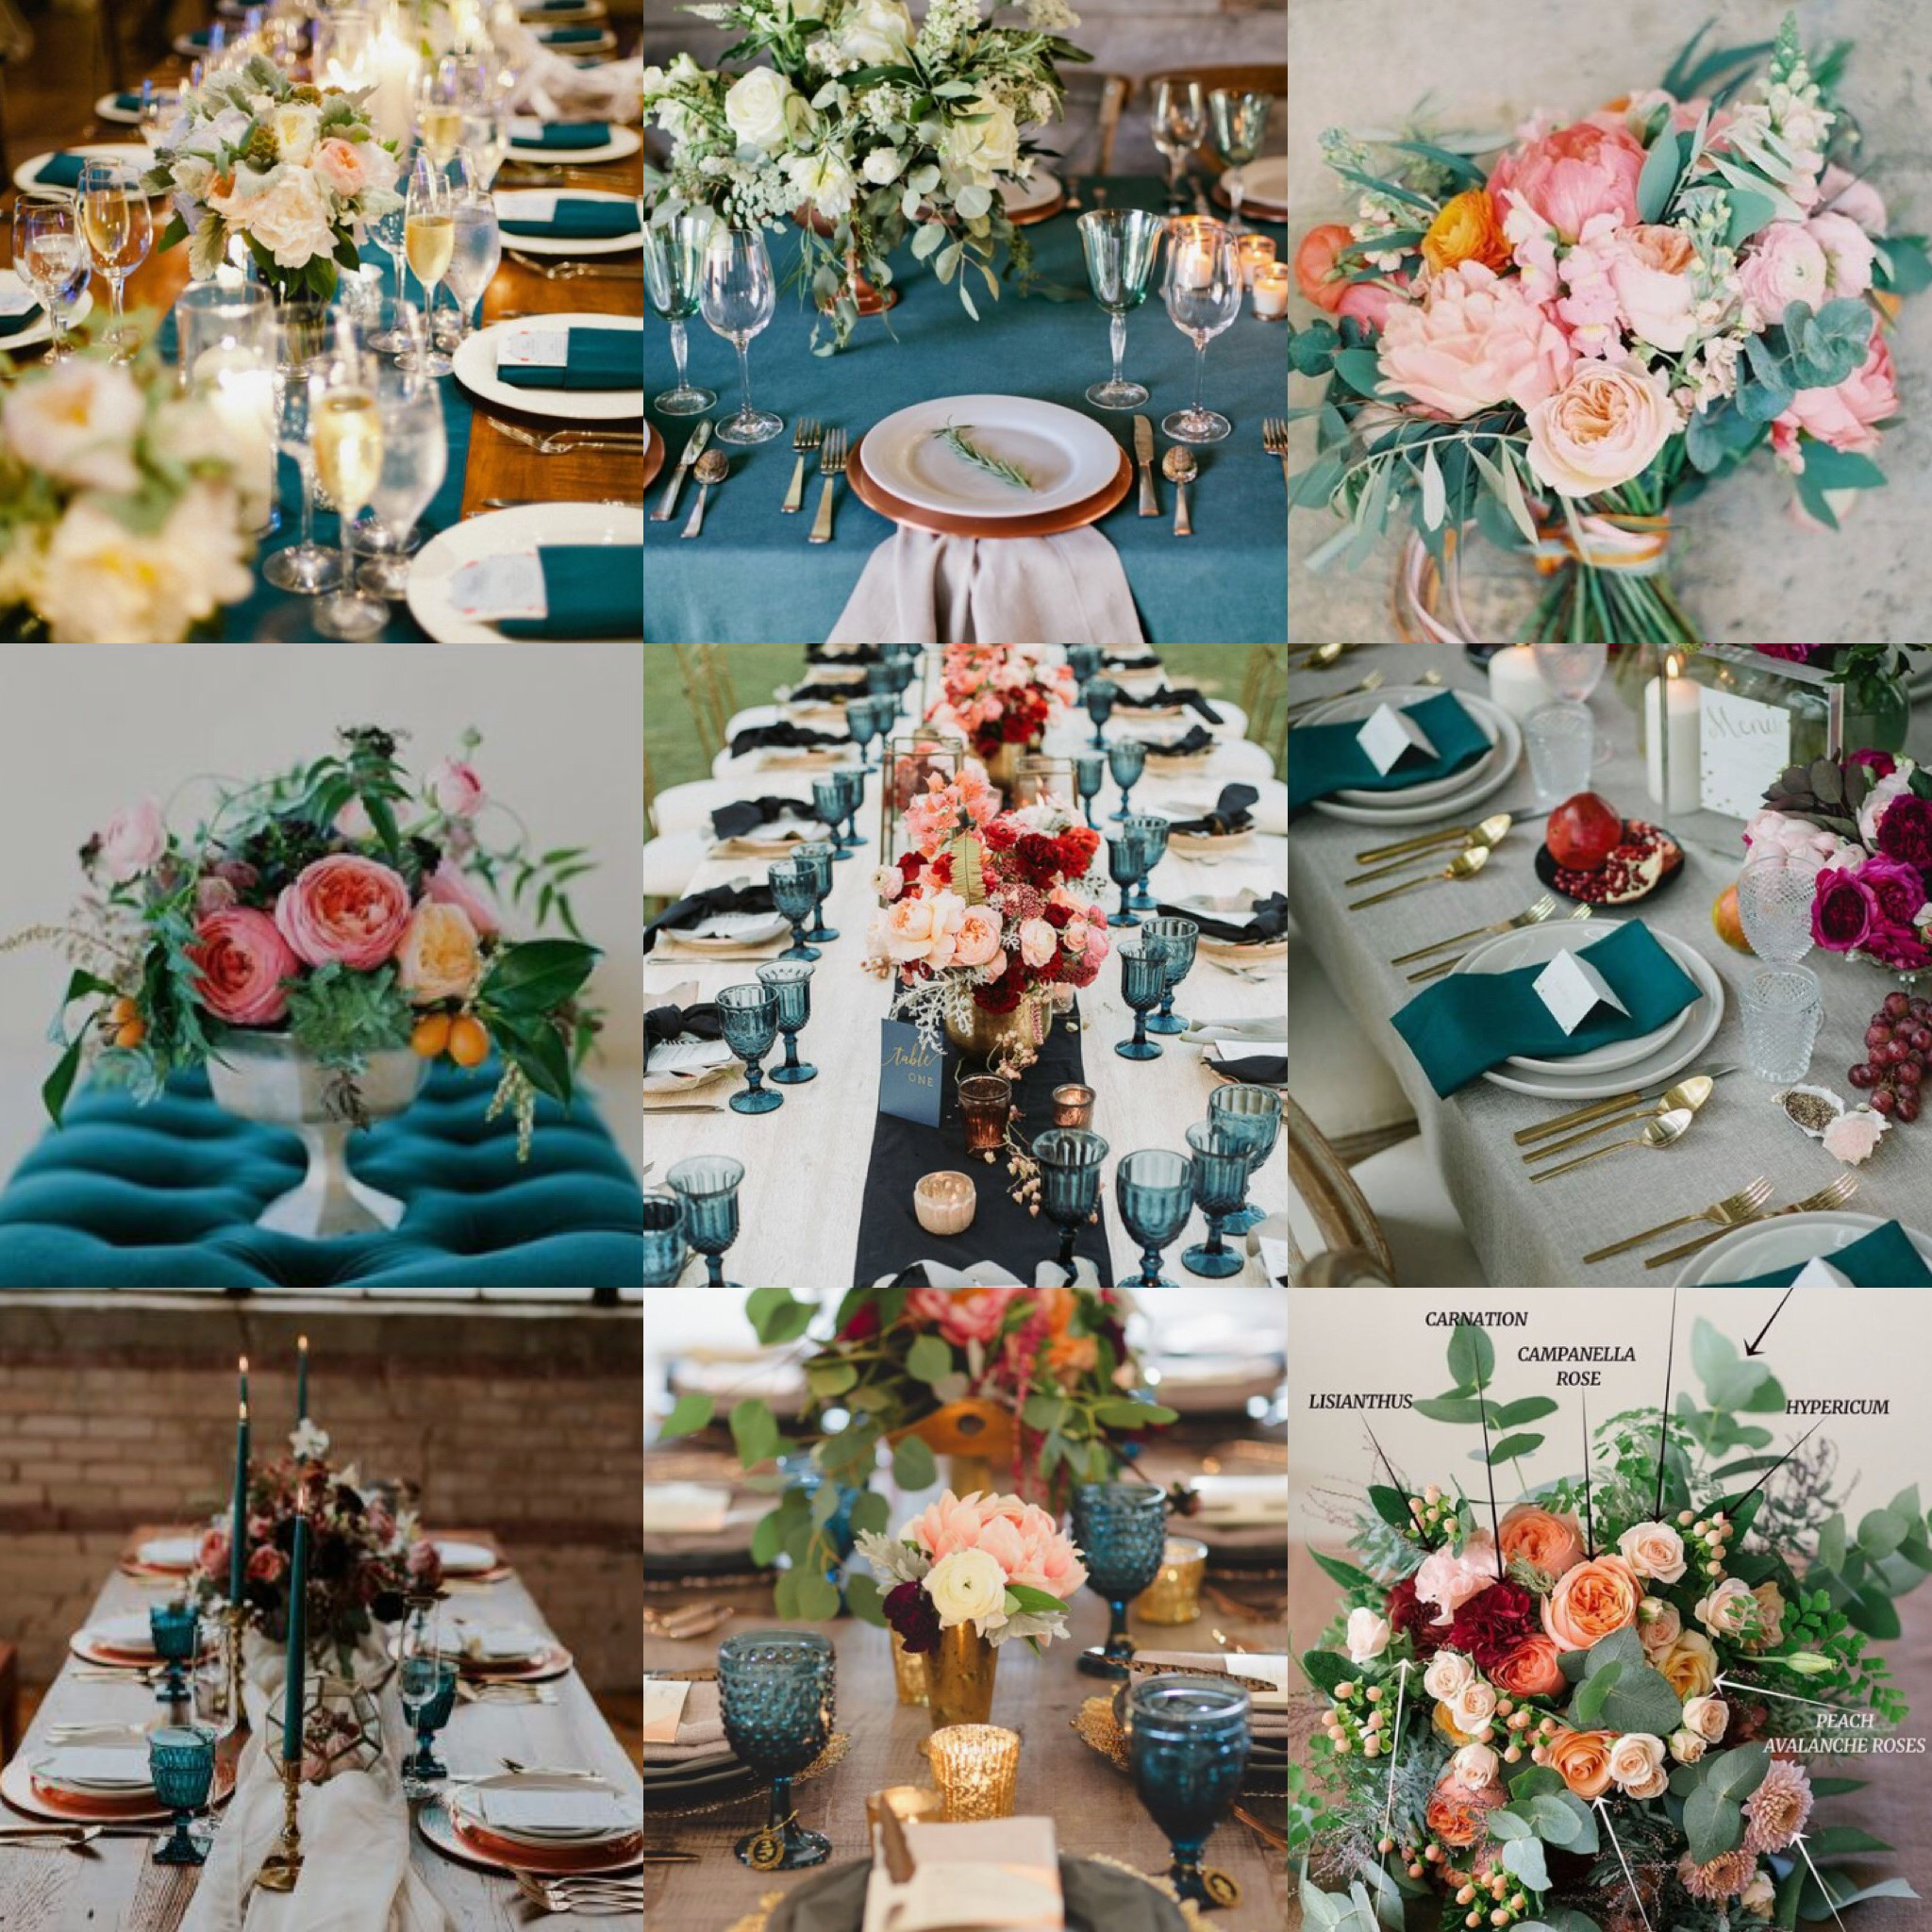 PapaKåta Autumn Open Weekend 2018 Inspiration: A Touch of Tuscany, Images via Pinterest